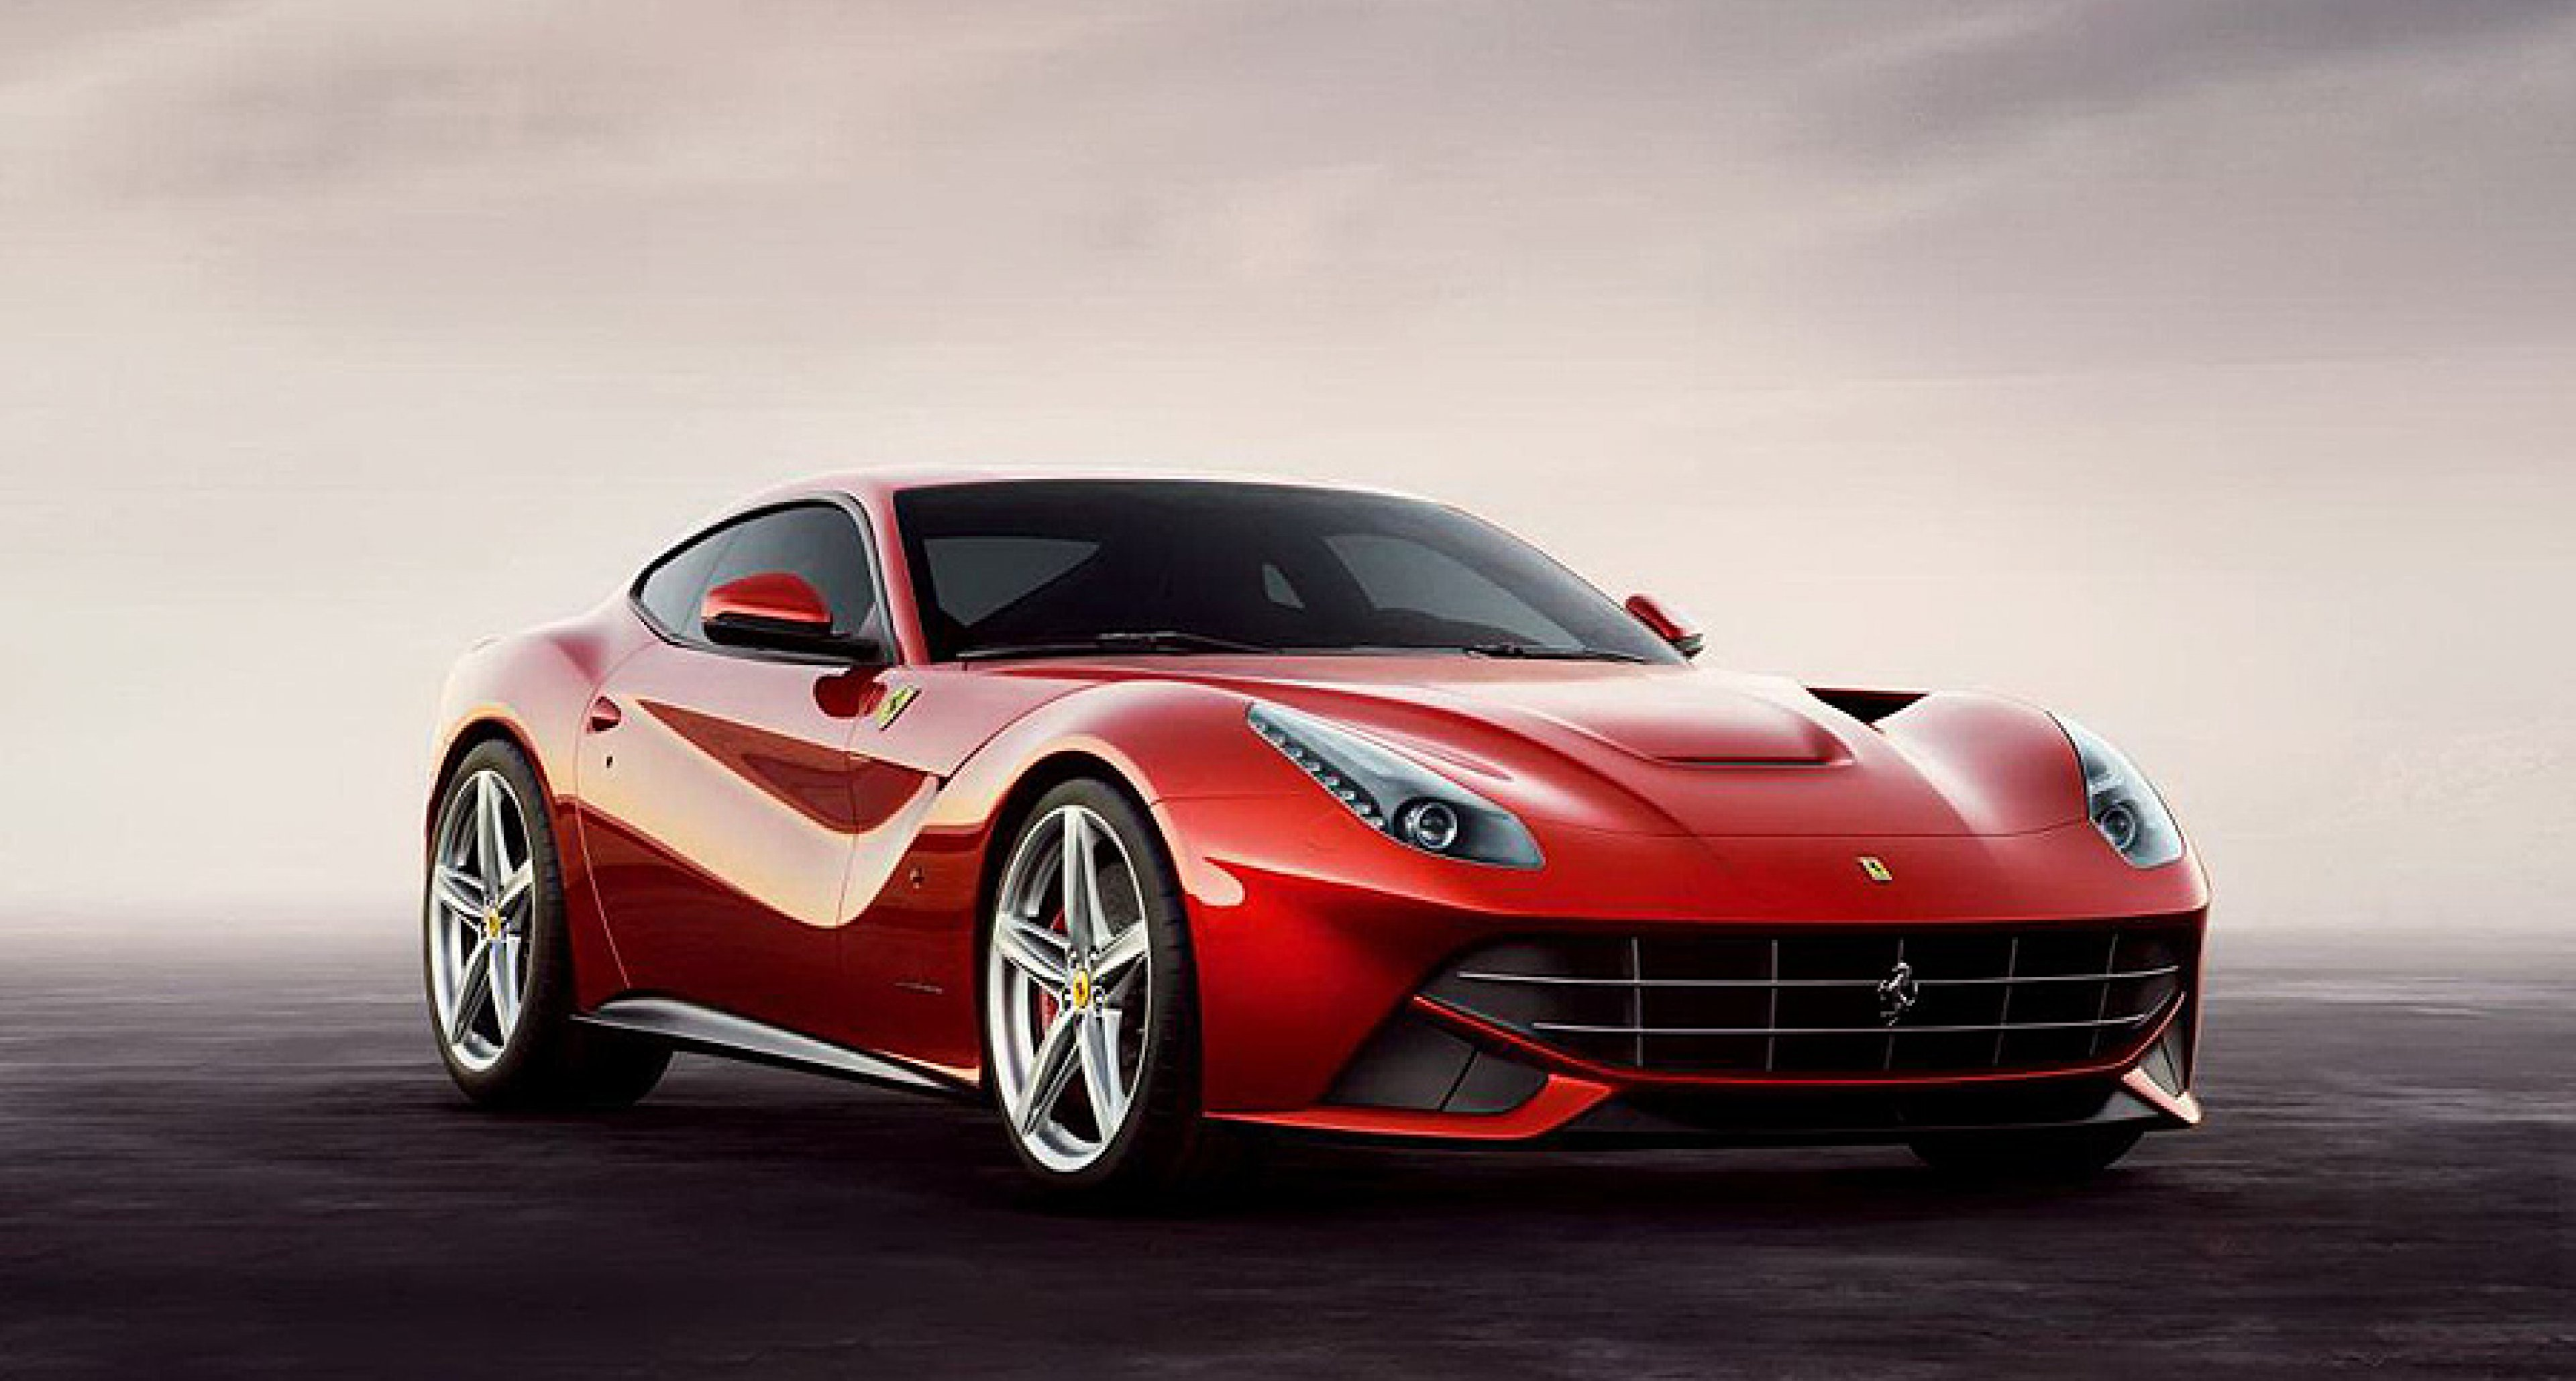 The New F12berlinetta: the fastest Ferrari ever built | Clic ...